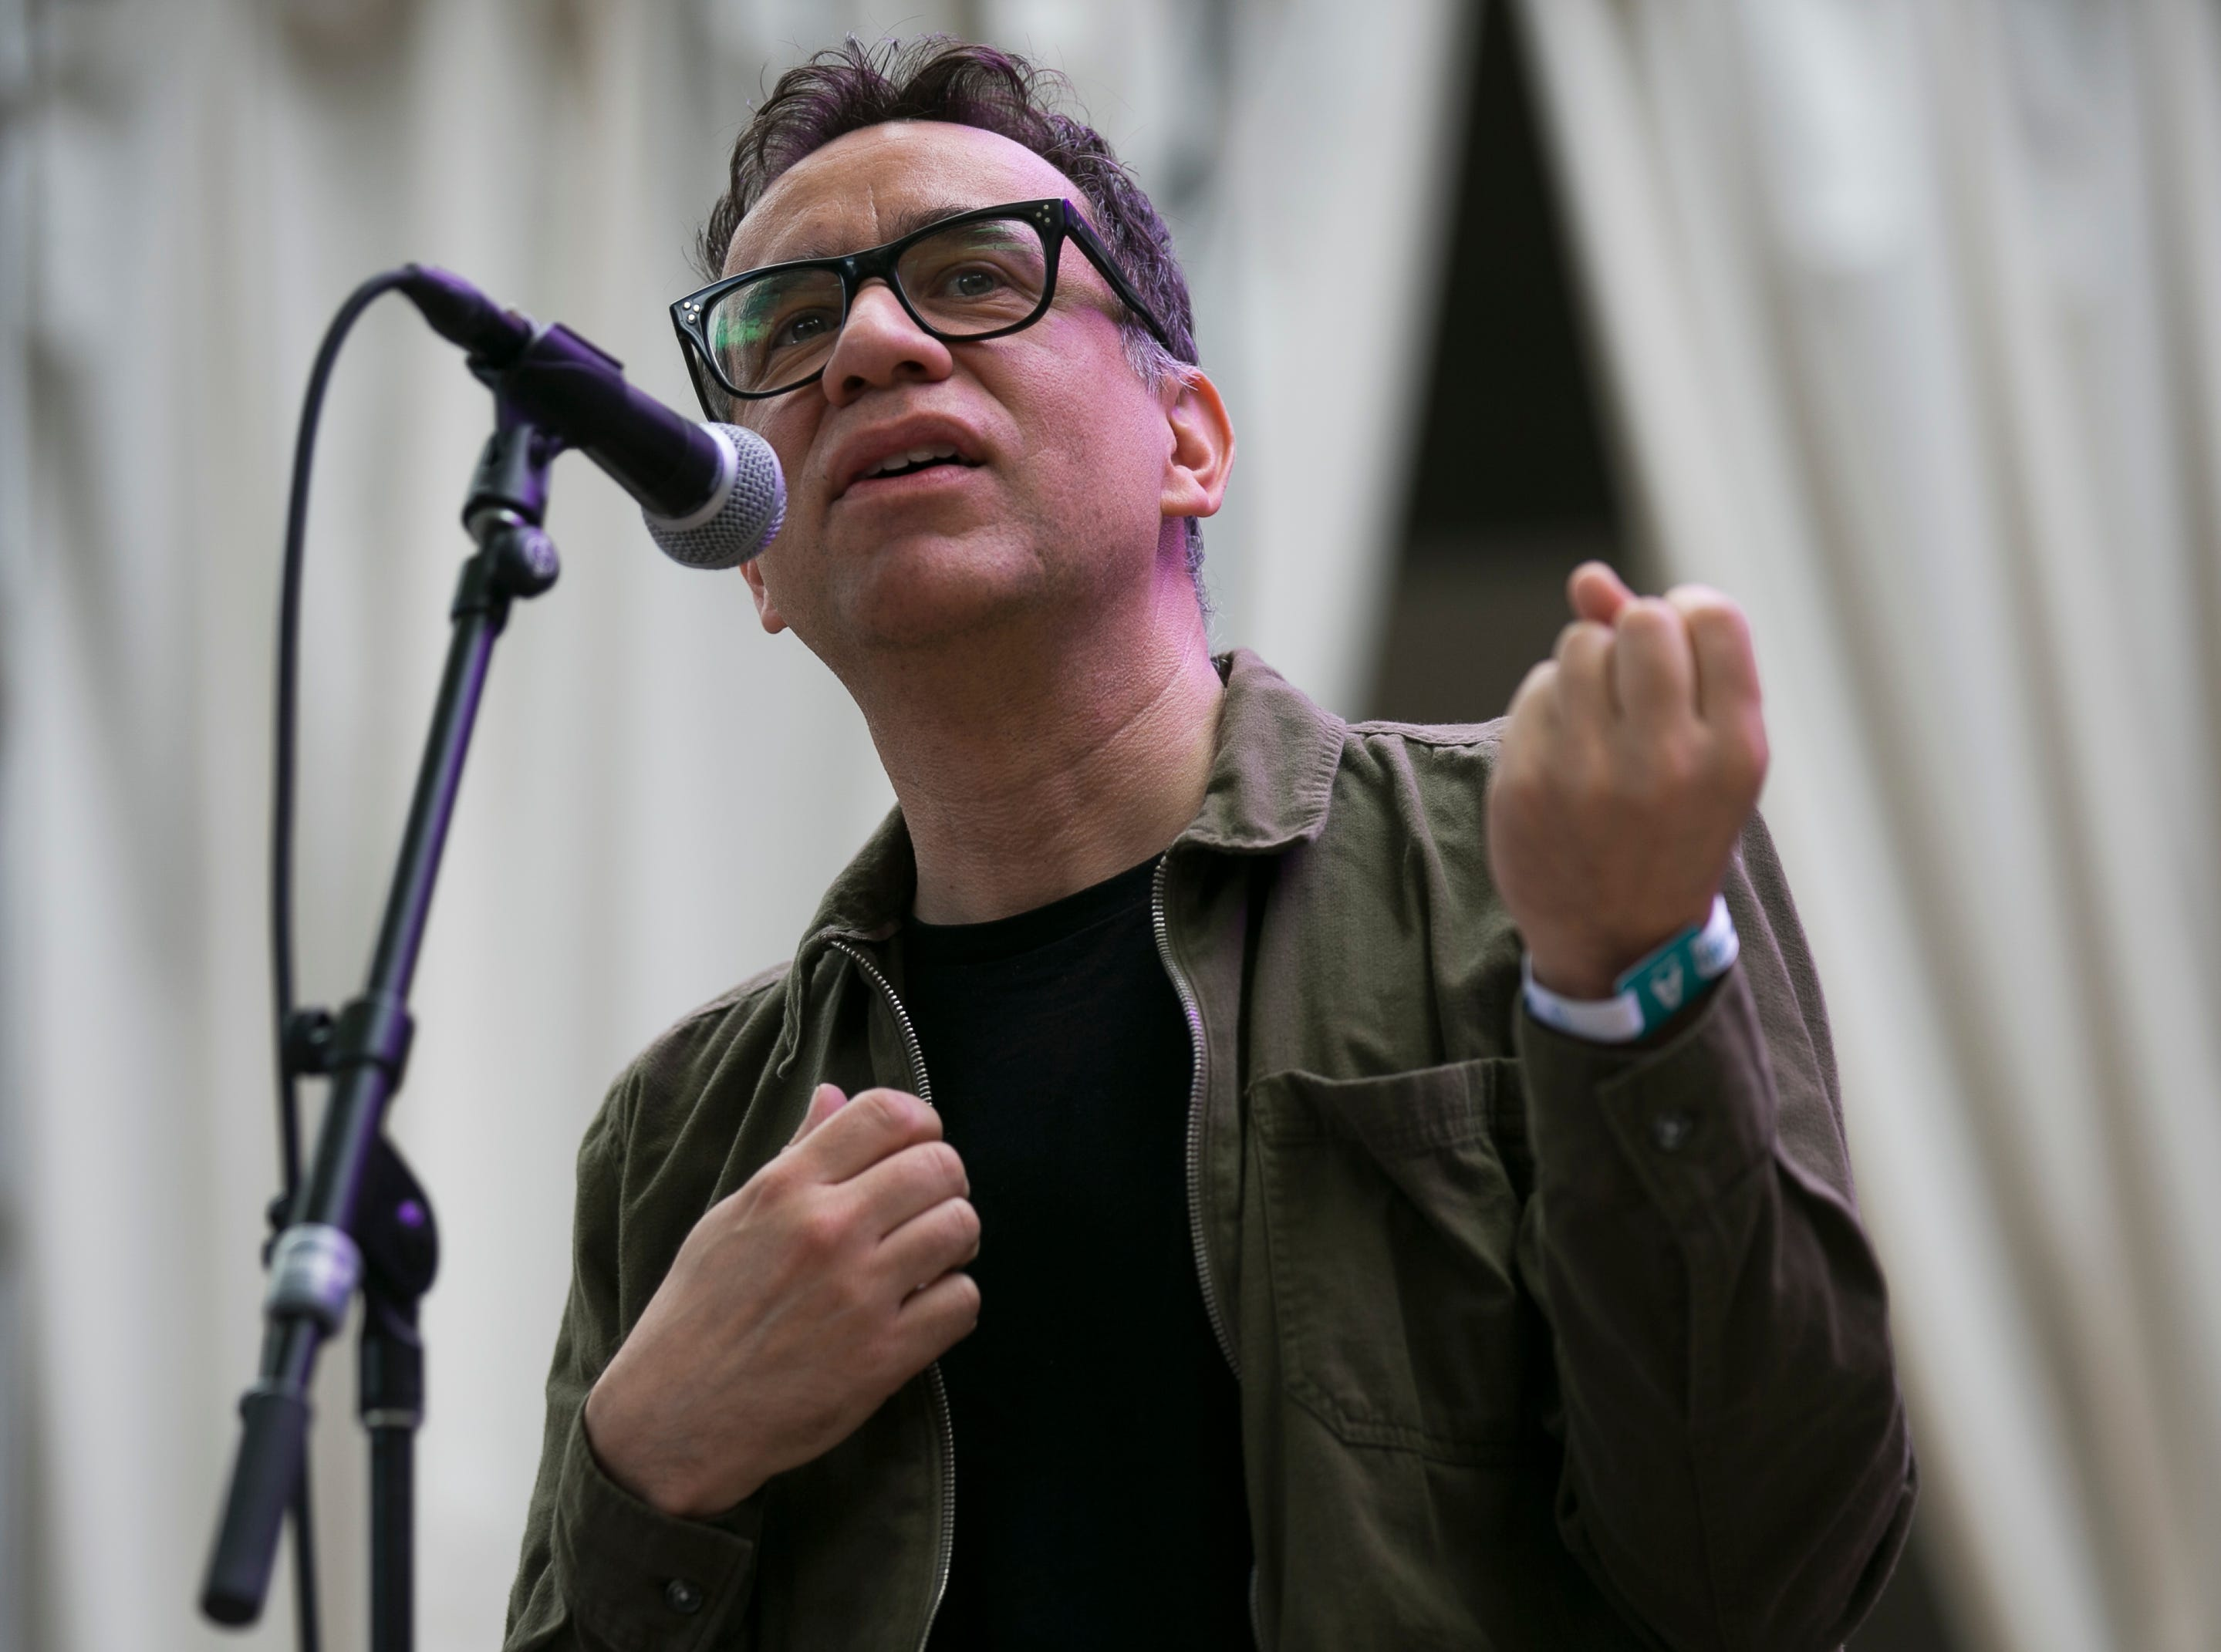 Fred Armisen performs at the 2019 FORM Arcosanti music festival near Camp Verde, Arizona, on May 12, 2019.